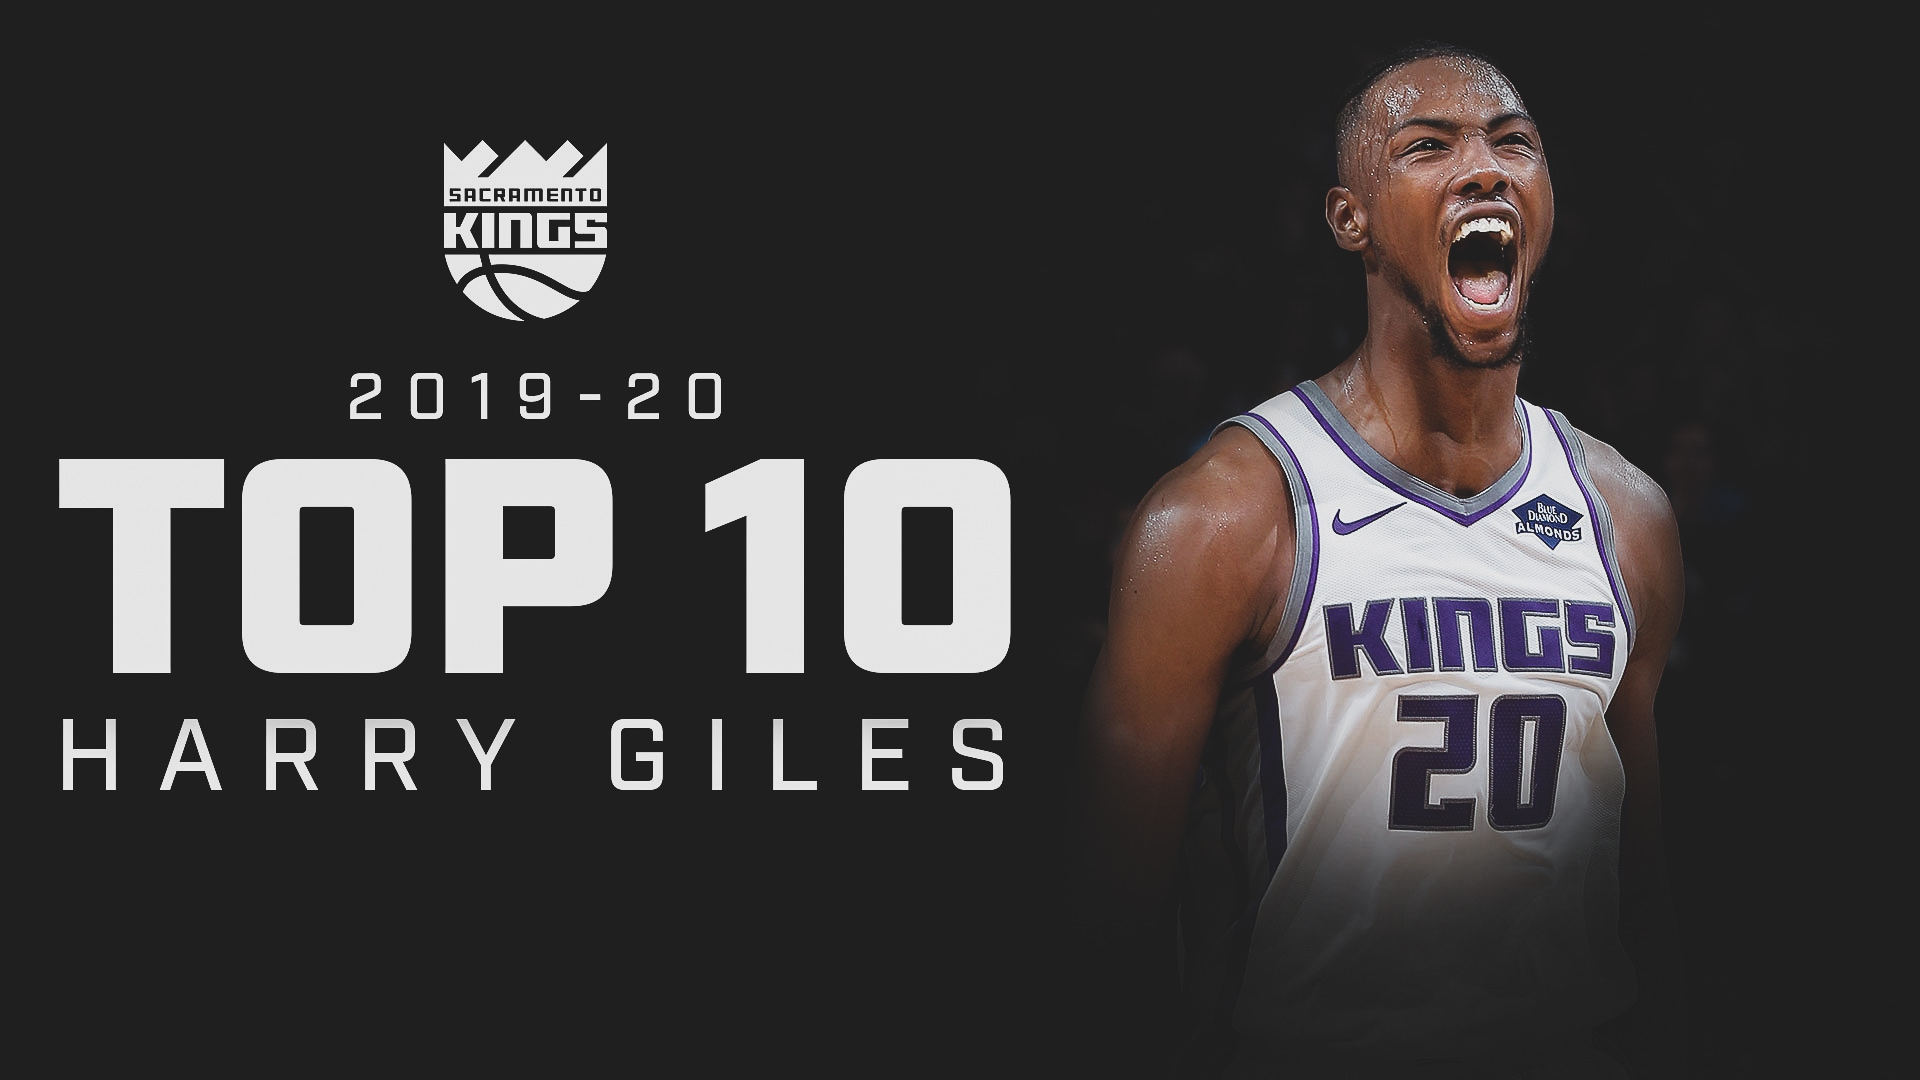 Harry Giles III | Top 10 Plays of the 2019-20 Season!